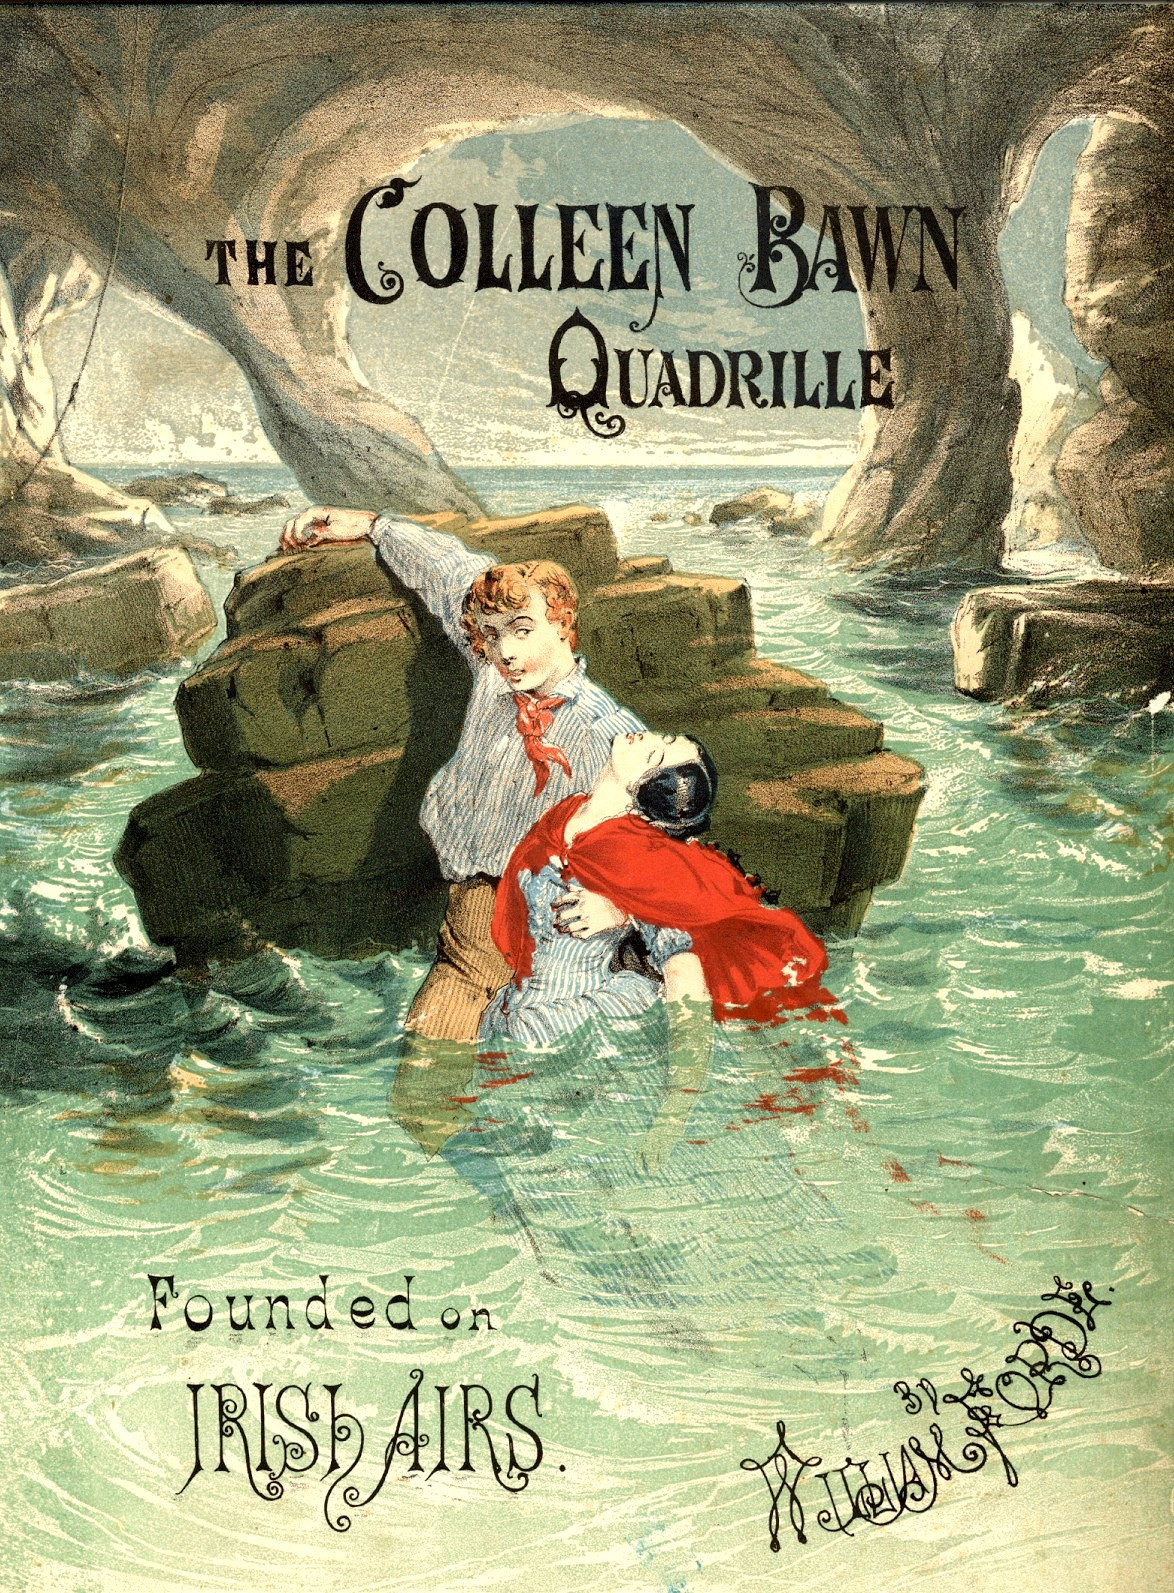 """Cover for sheet music accompanying the play """"The Colleen Bawn"""" by Dion Boucicault, c.1861, featuring the famous drowning scene"""